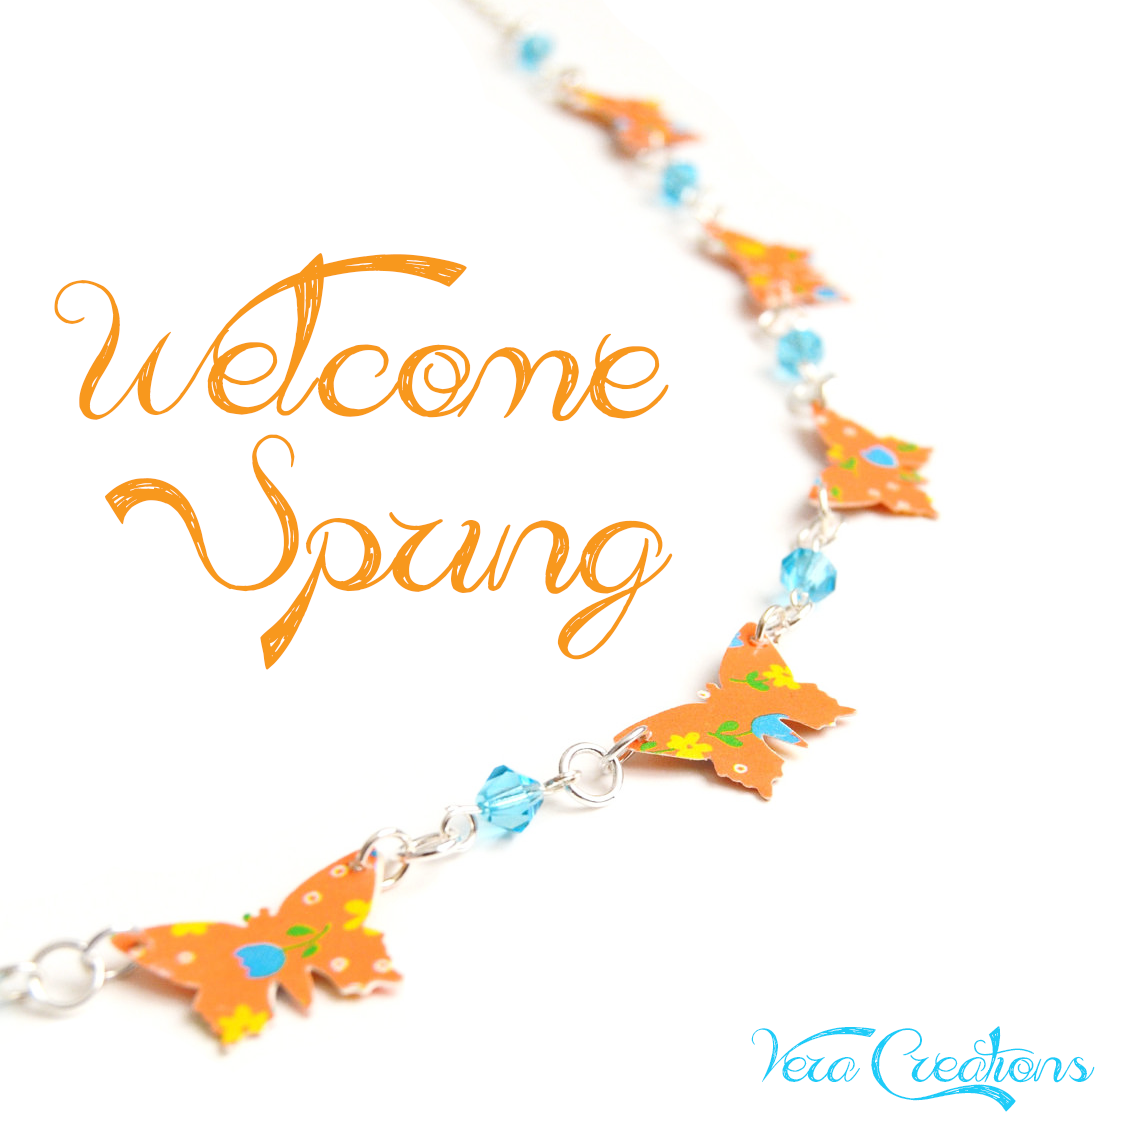 https://www.etsy.com/listing/71062101/necklace-with-orange-paper-butterflies?ref=shop_home_active_1&ulsfg=true